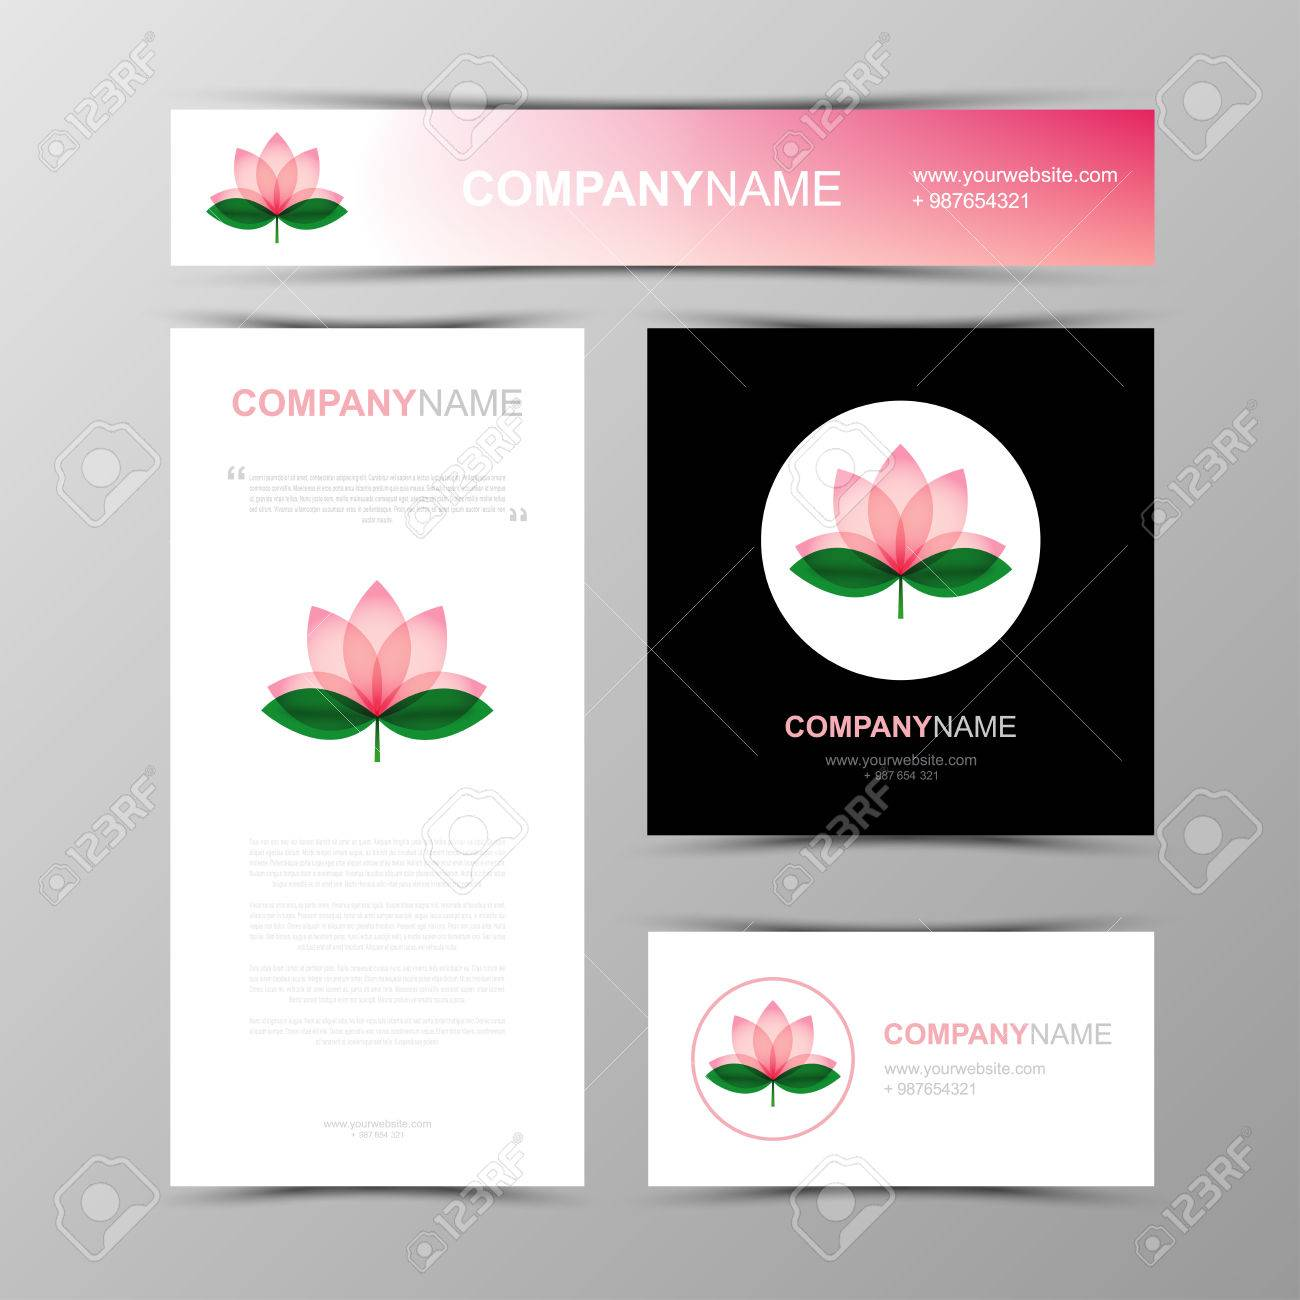 Template Of Identity For Yoga Studio And Beauty Salon Business Card Banner Brochure